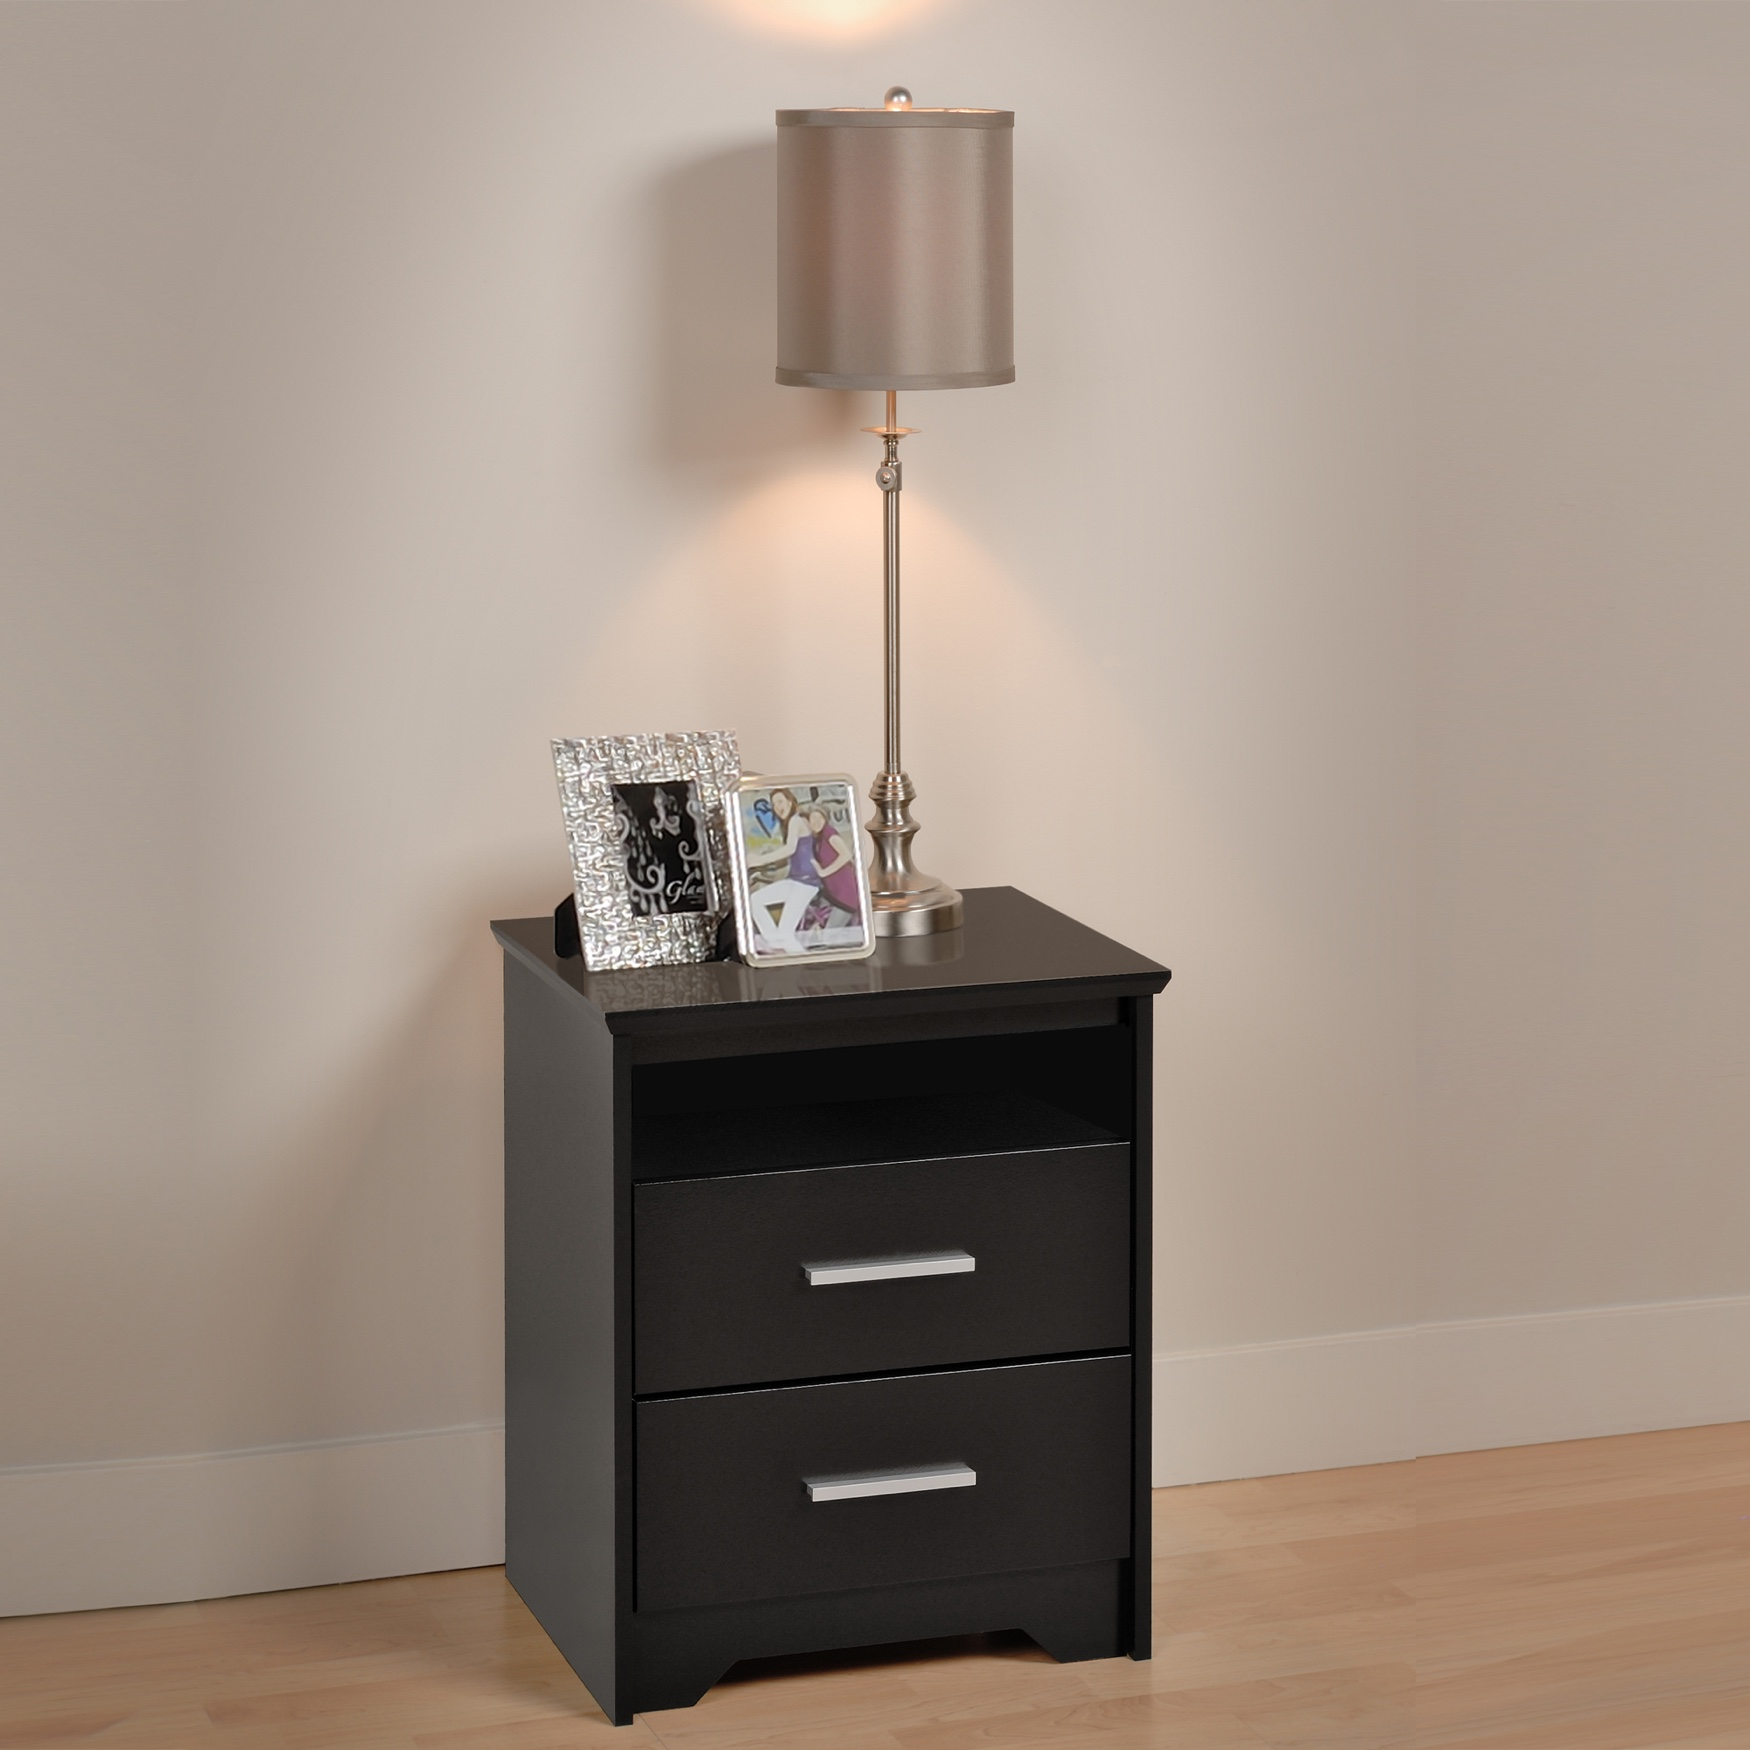 Coal Harbor 2-Drawer Tall Nightstand with Open Shelf, Black, BLACK